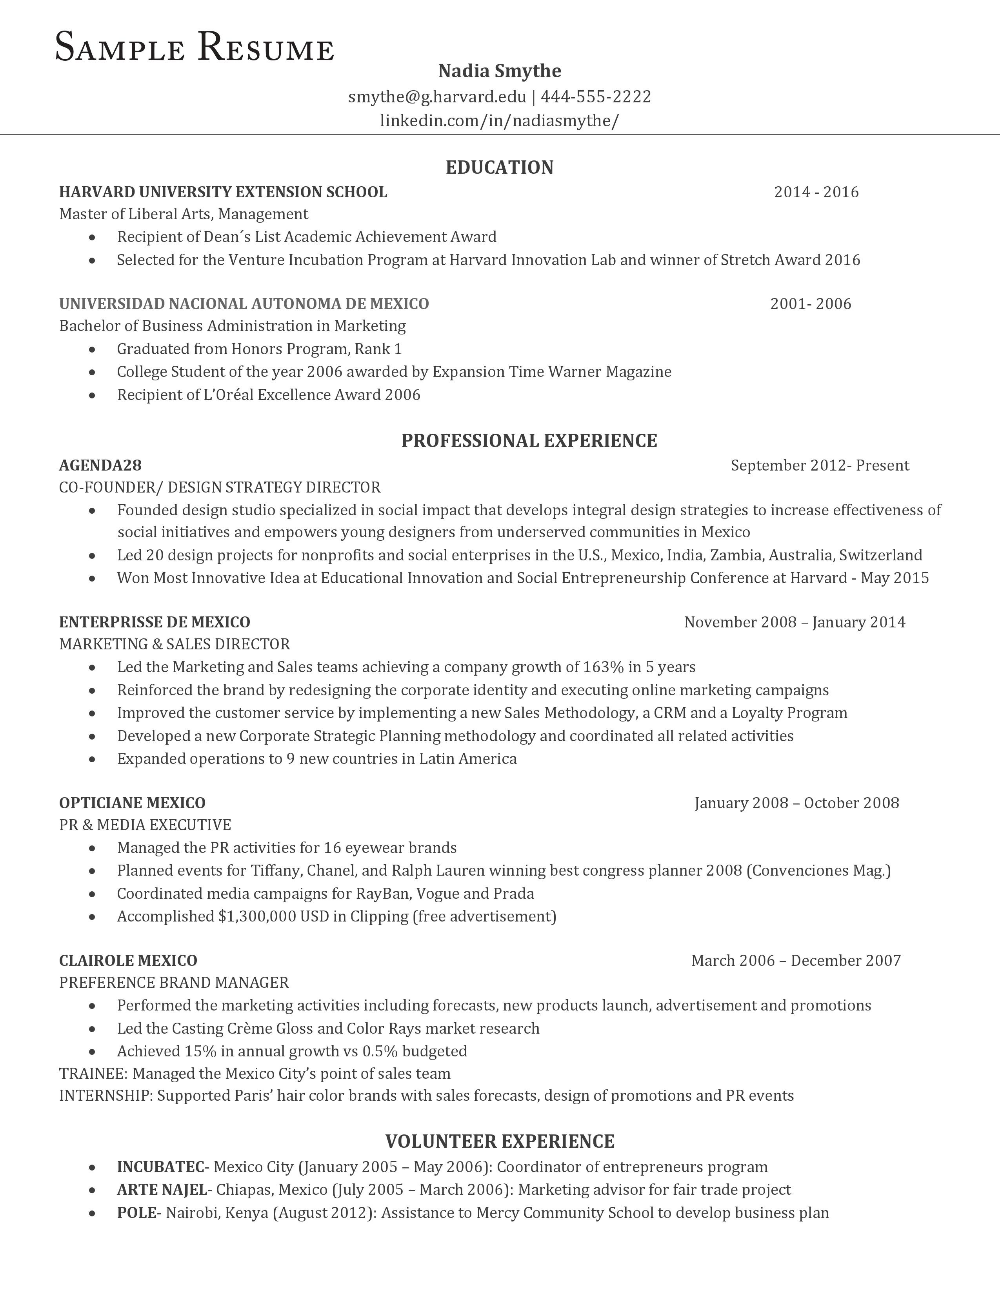 Here's an example of the perfect resume, according to